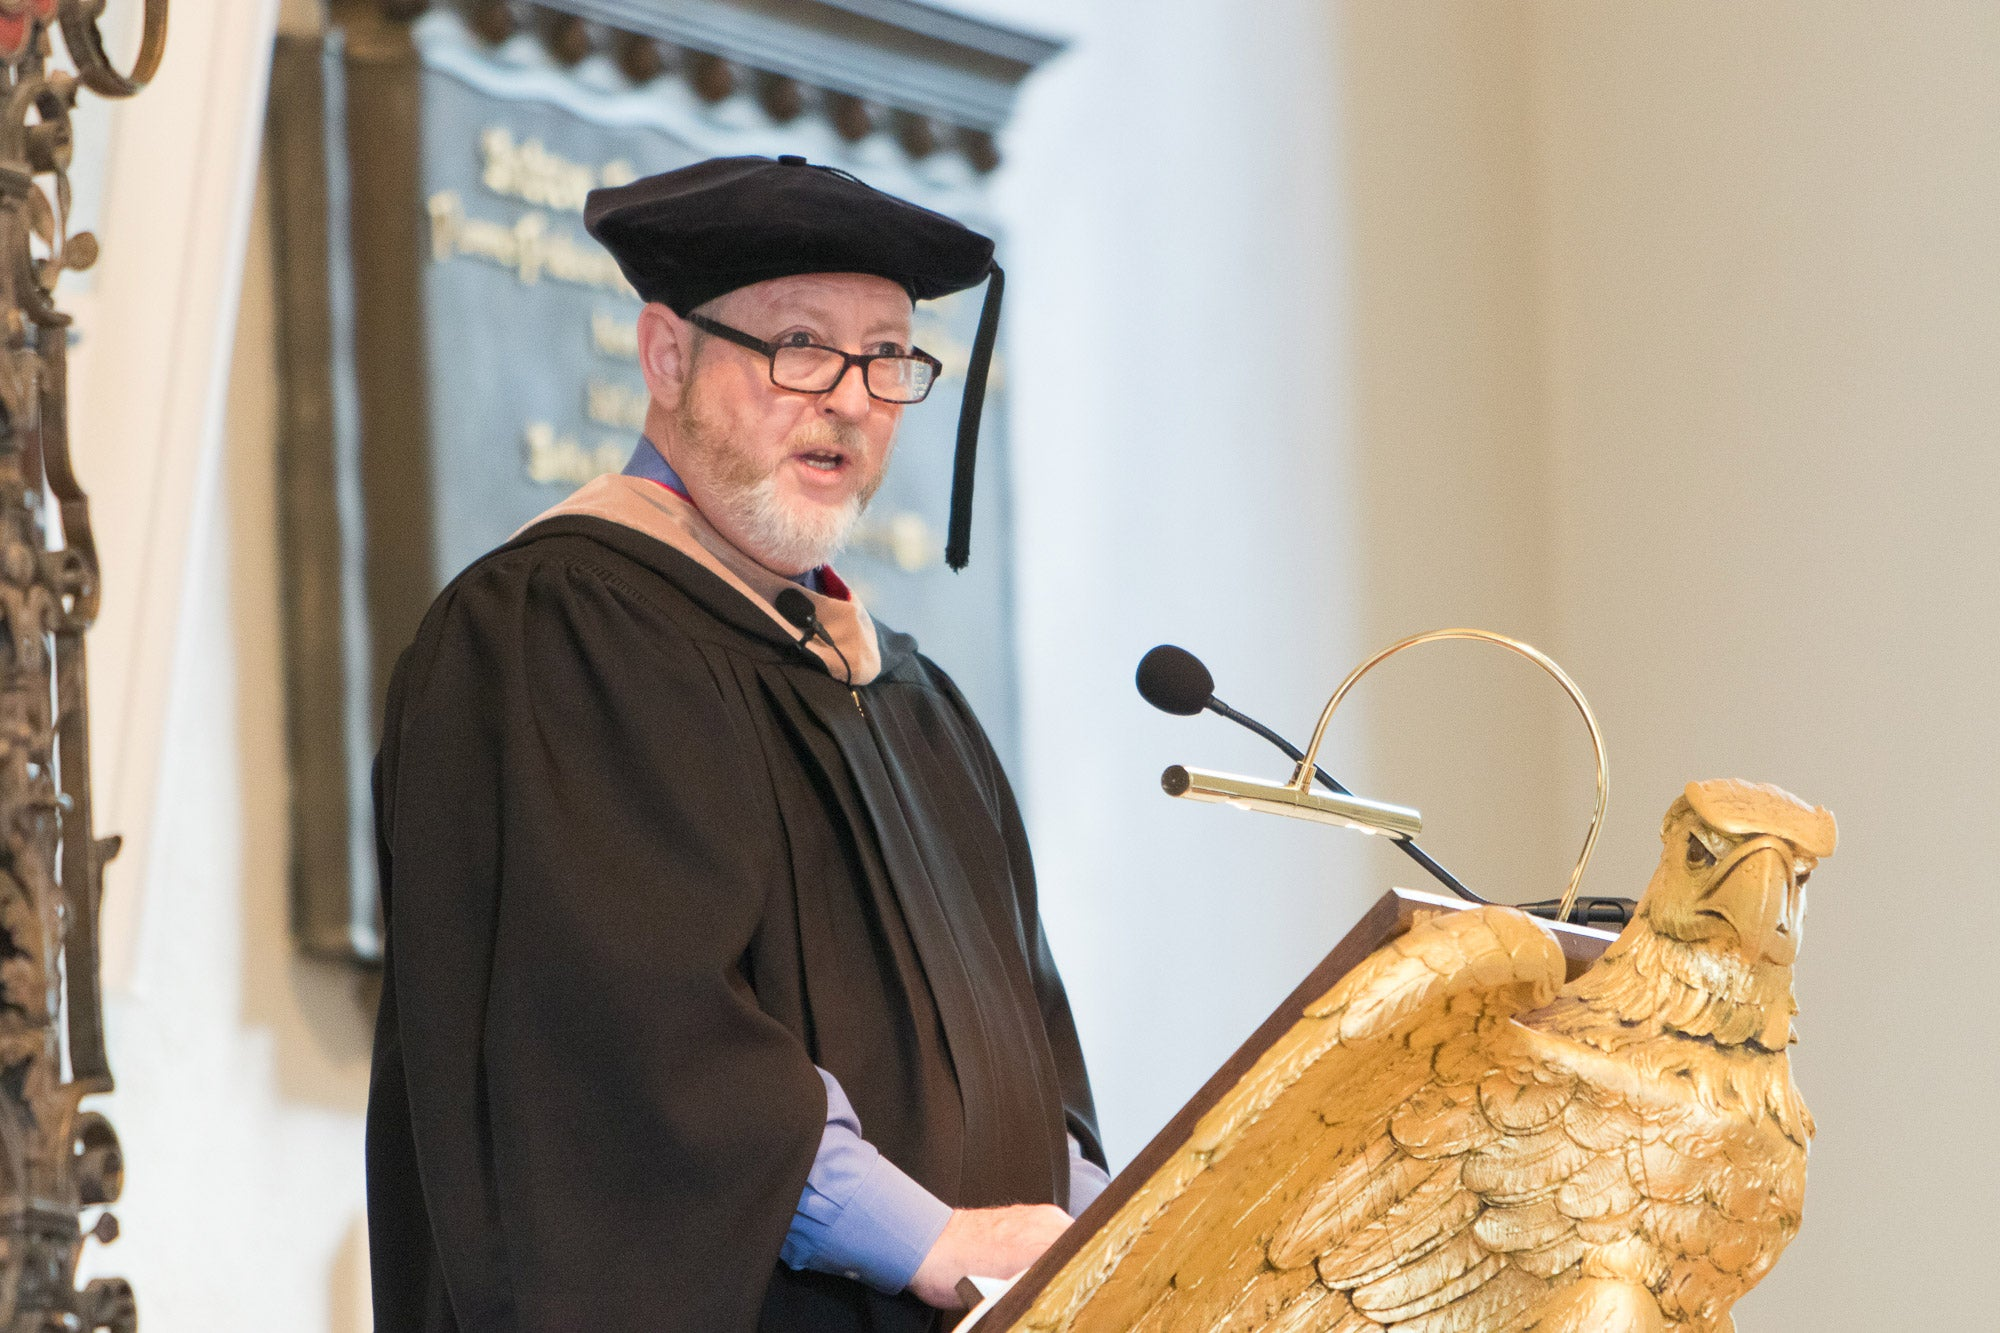 Huntington D. Lambert, dean of the Division of Continuing Education and University Extension